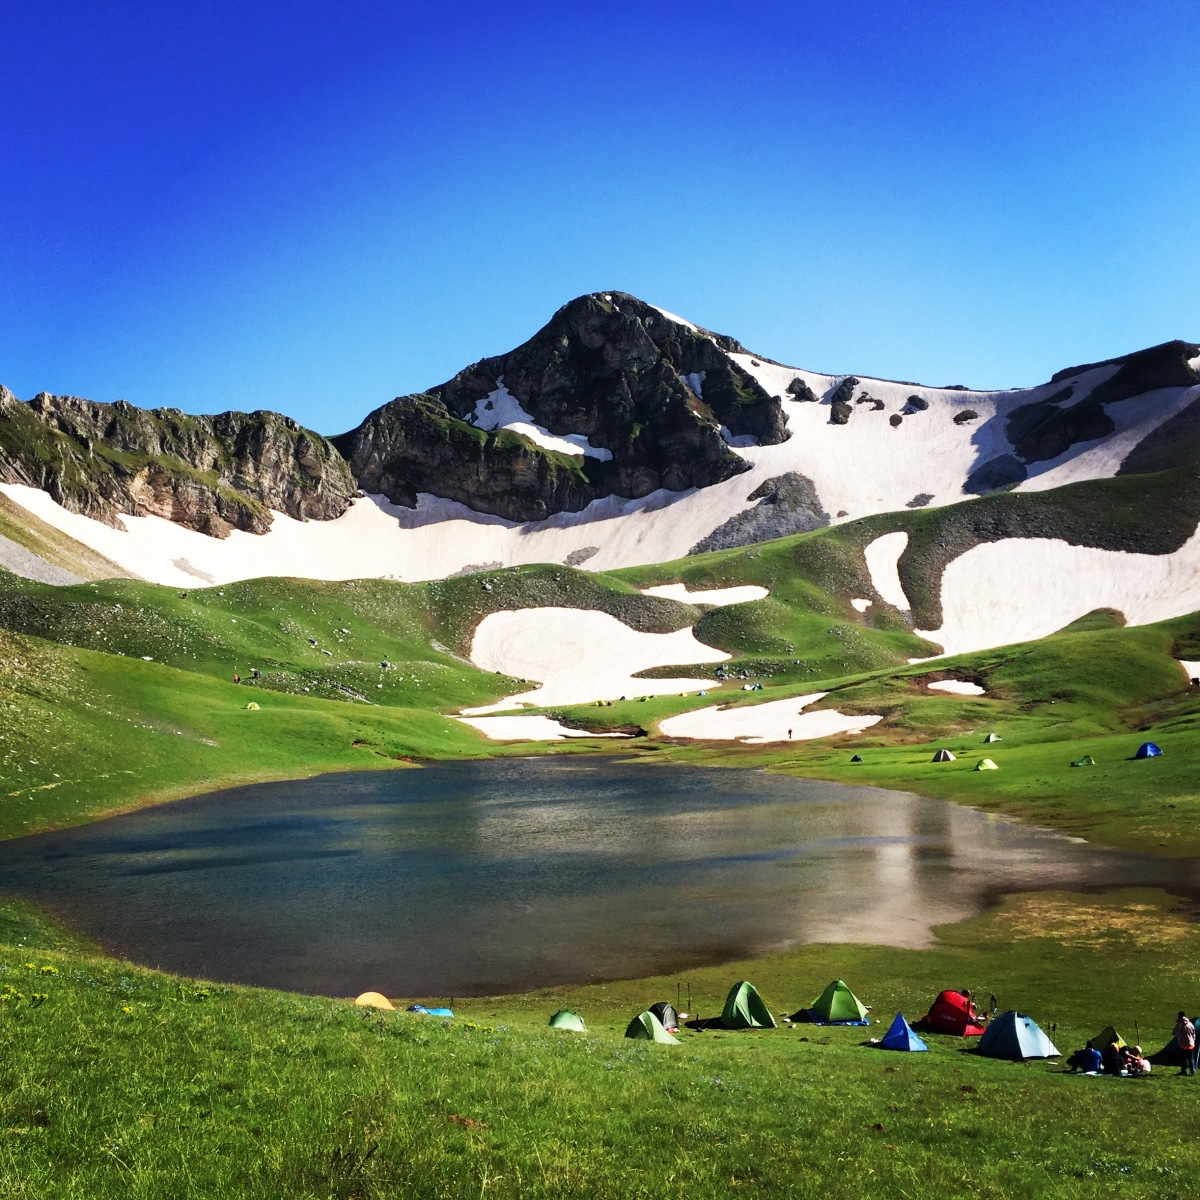 Verliga alpine lake - Wild camping on Greece's secret paradise